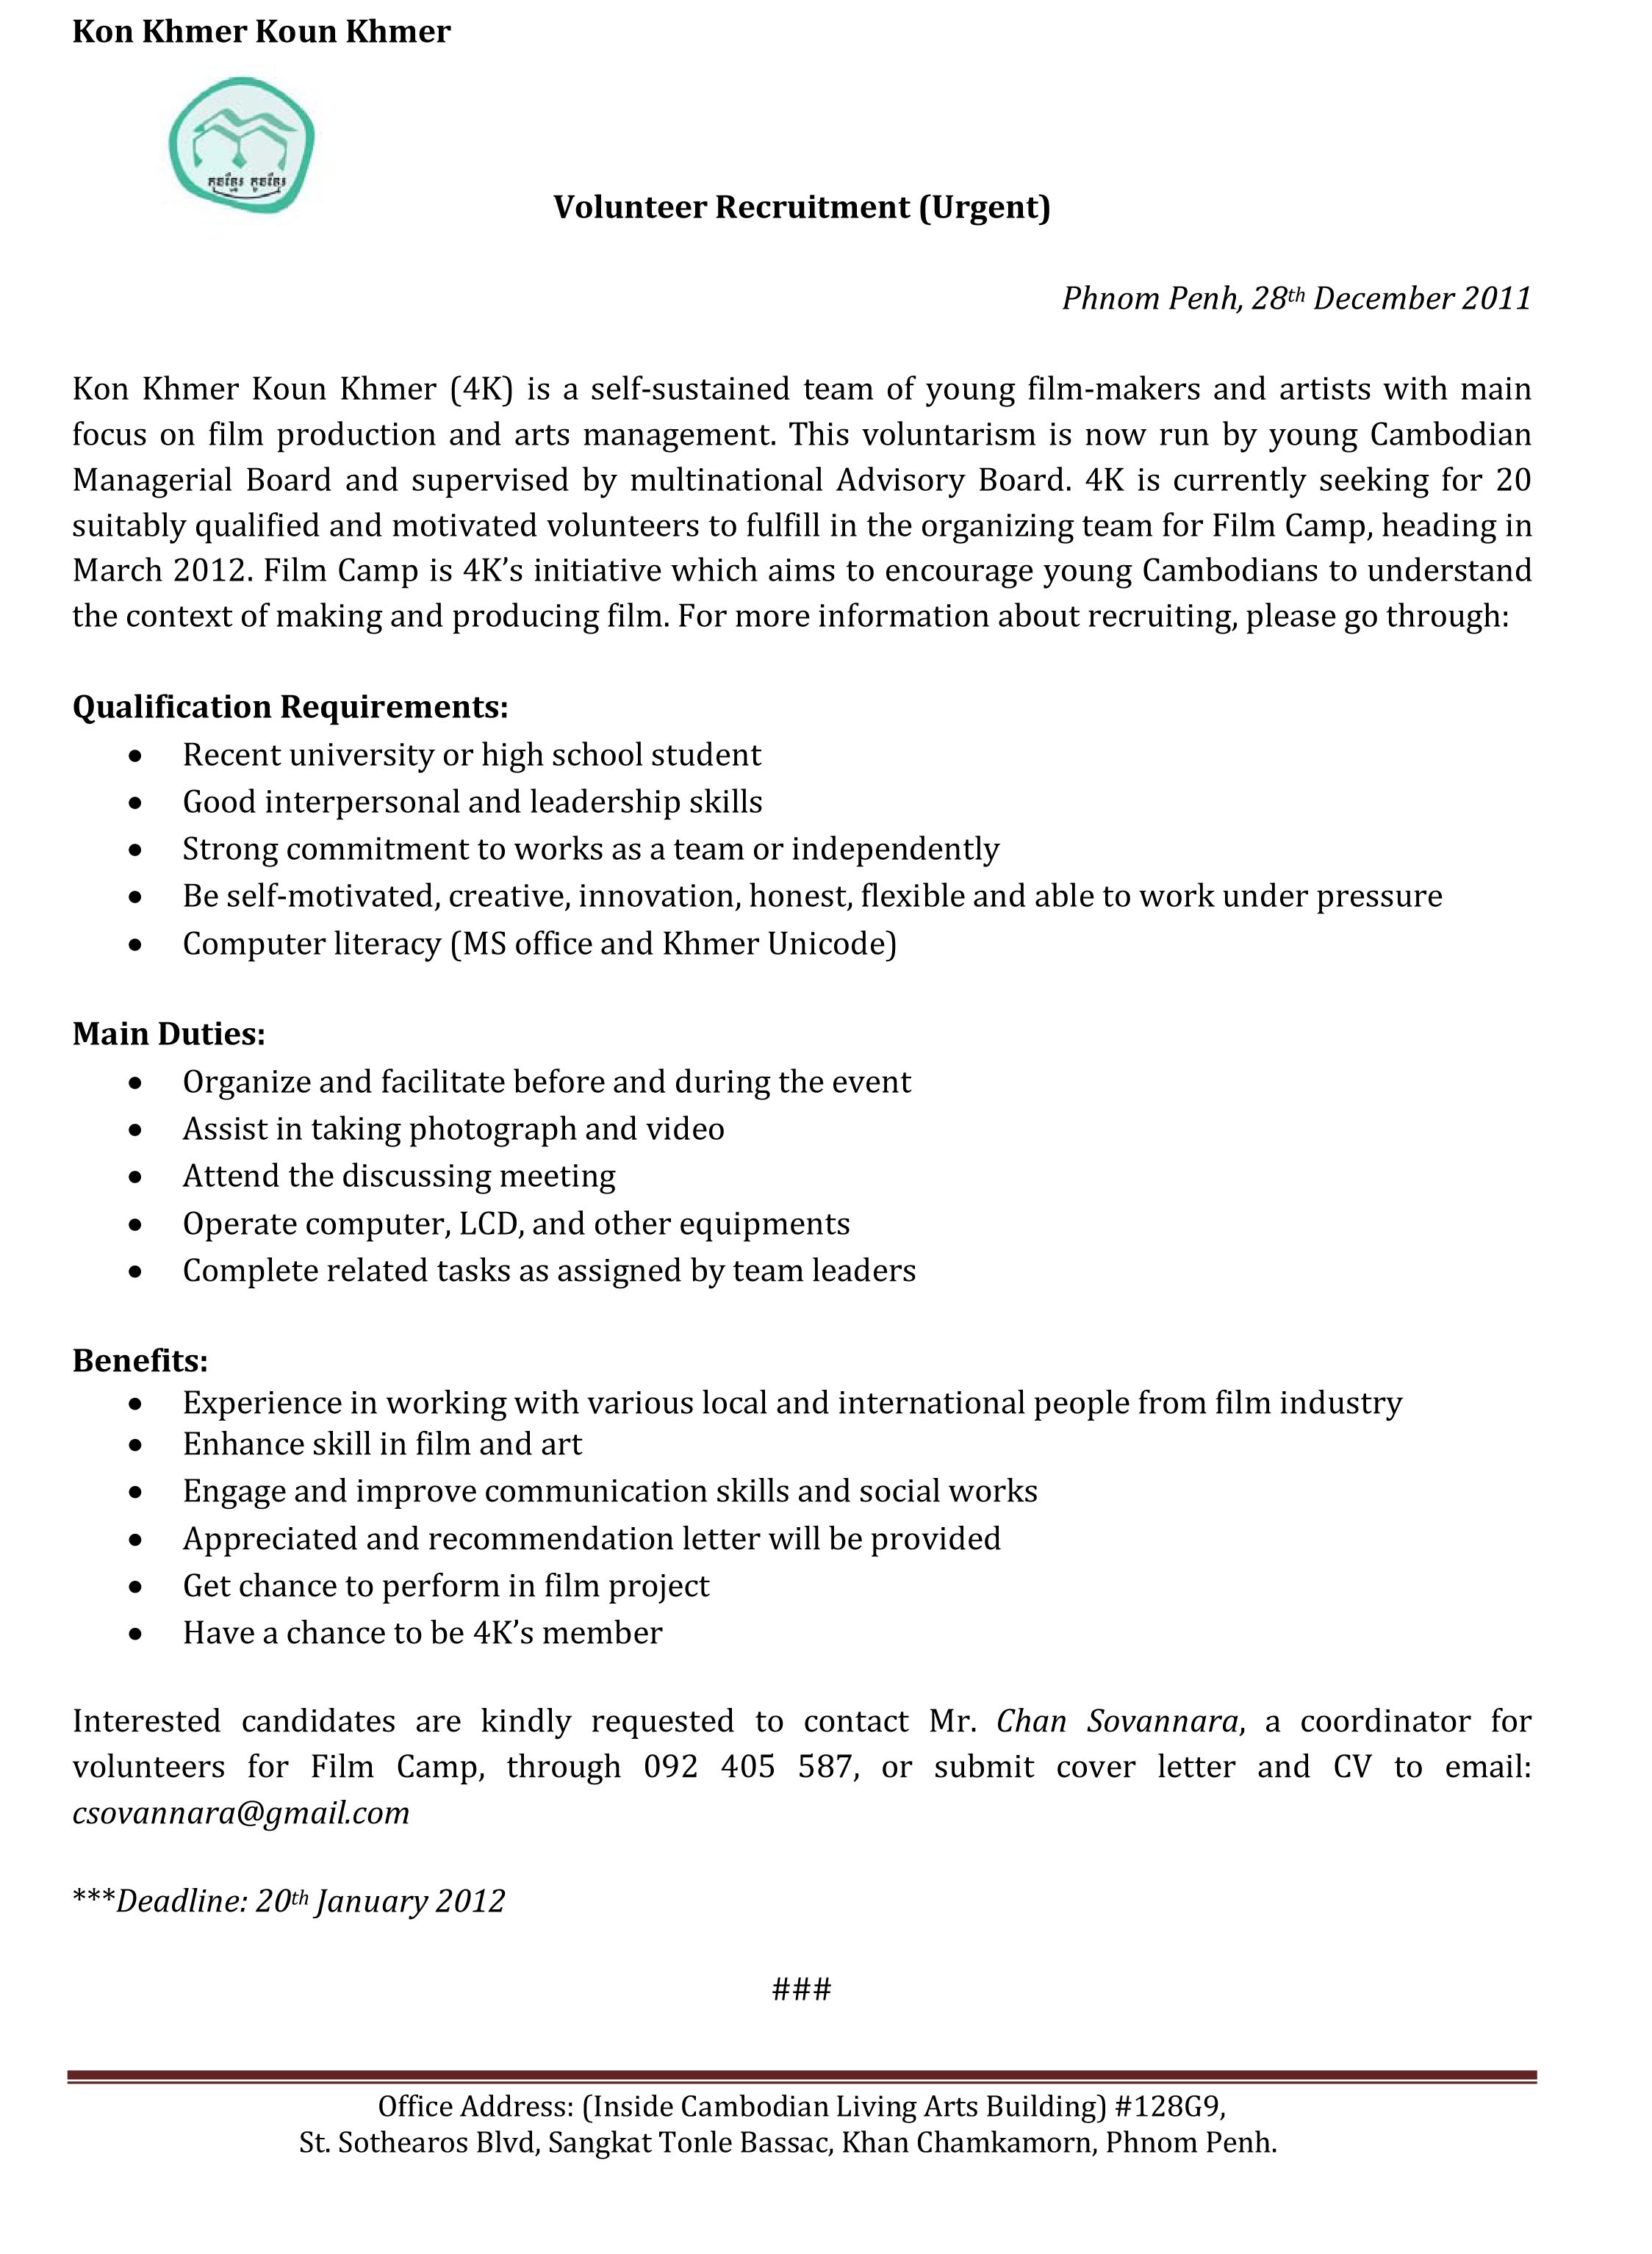 Proposal Cover Letter Template from i0.wp.com